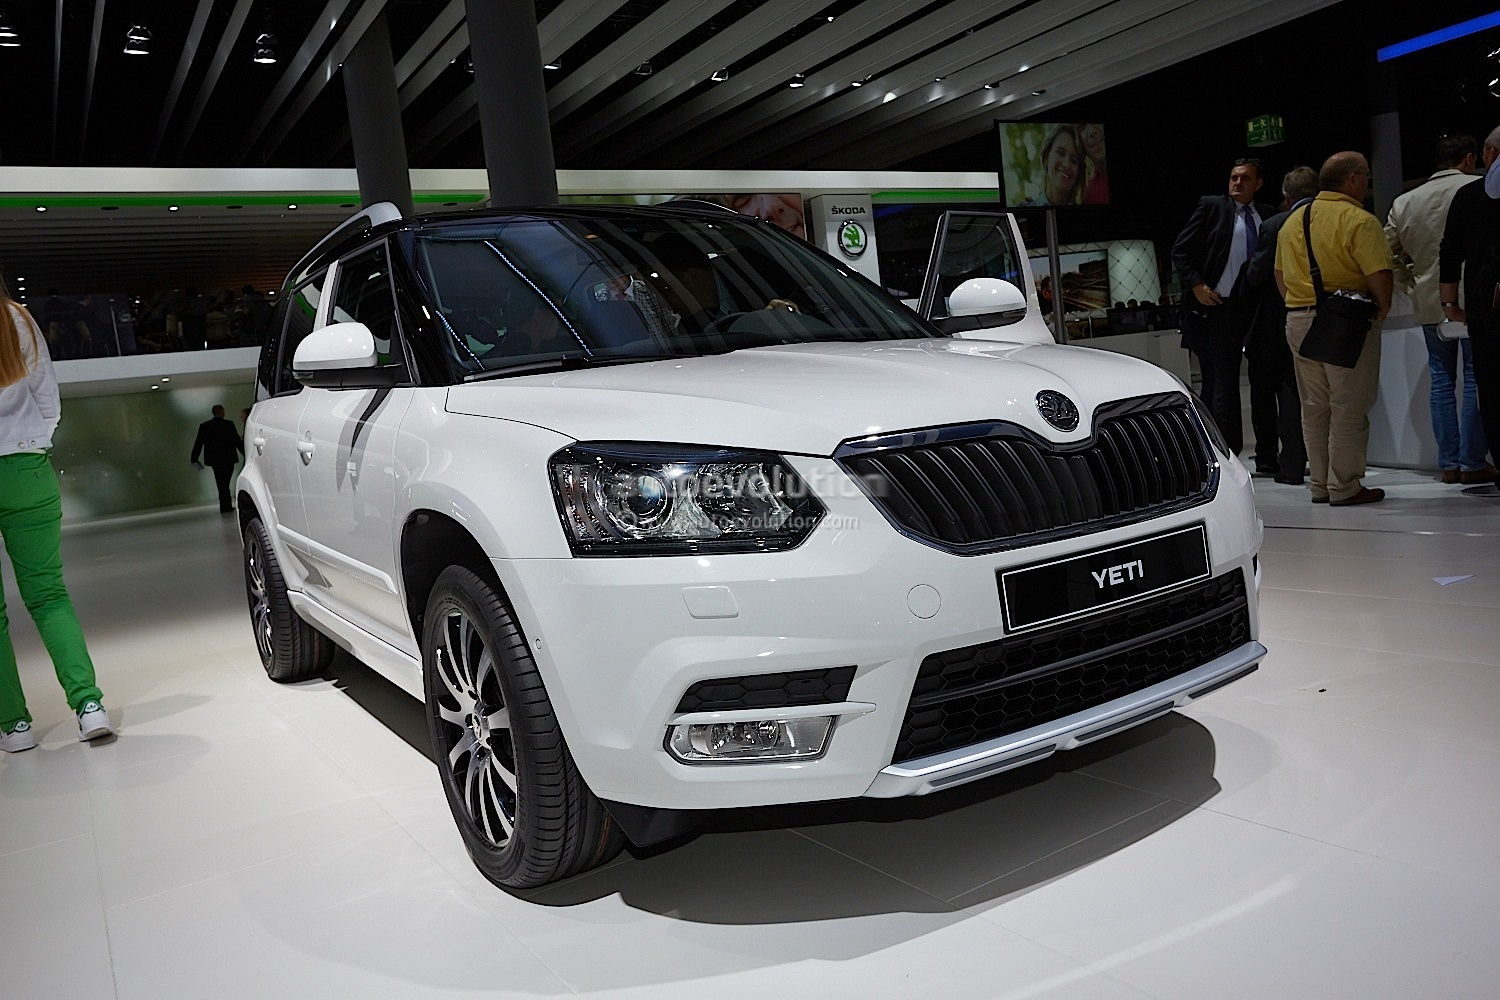 frankfurt 2013 skoda yeti facelift live photos. Black Bedroom Furniture Sets. Home Design Ideas